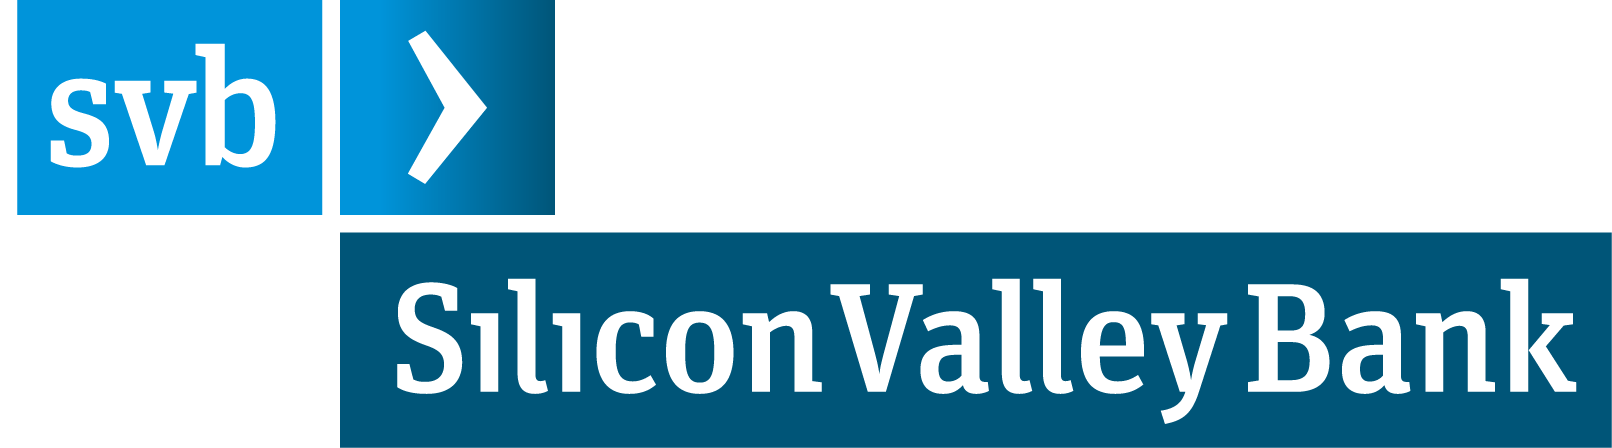 Silicon Valley Bank Logo [svb.com] png